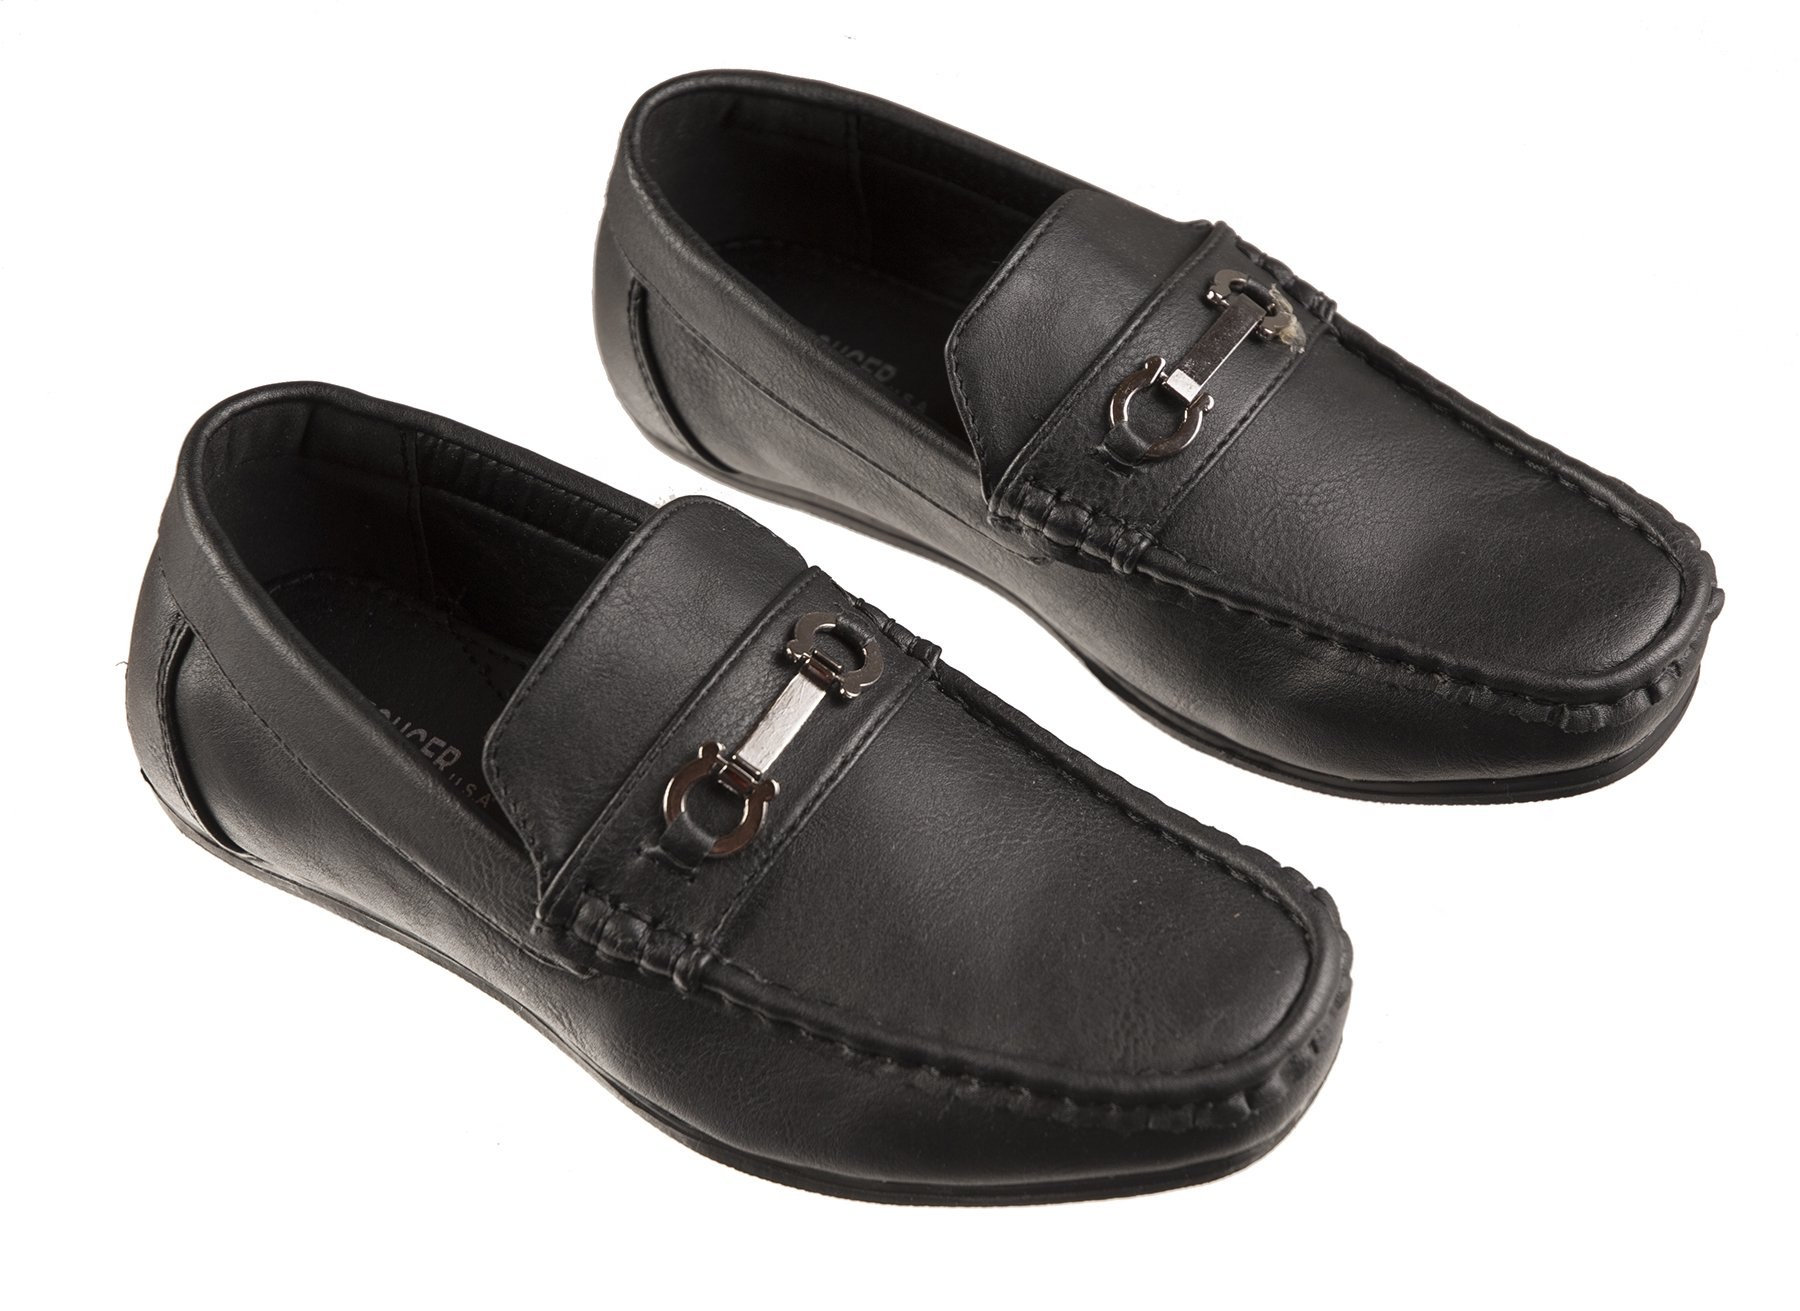 Boys Fashion Loafers Slip on Dress Shoes in White and Black, Sizes Toddlers 6 to Big Boys 8 (Toddlers 7, Black)